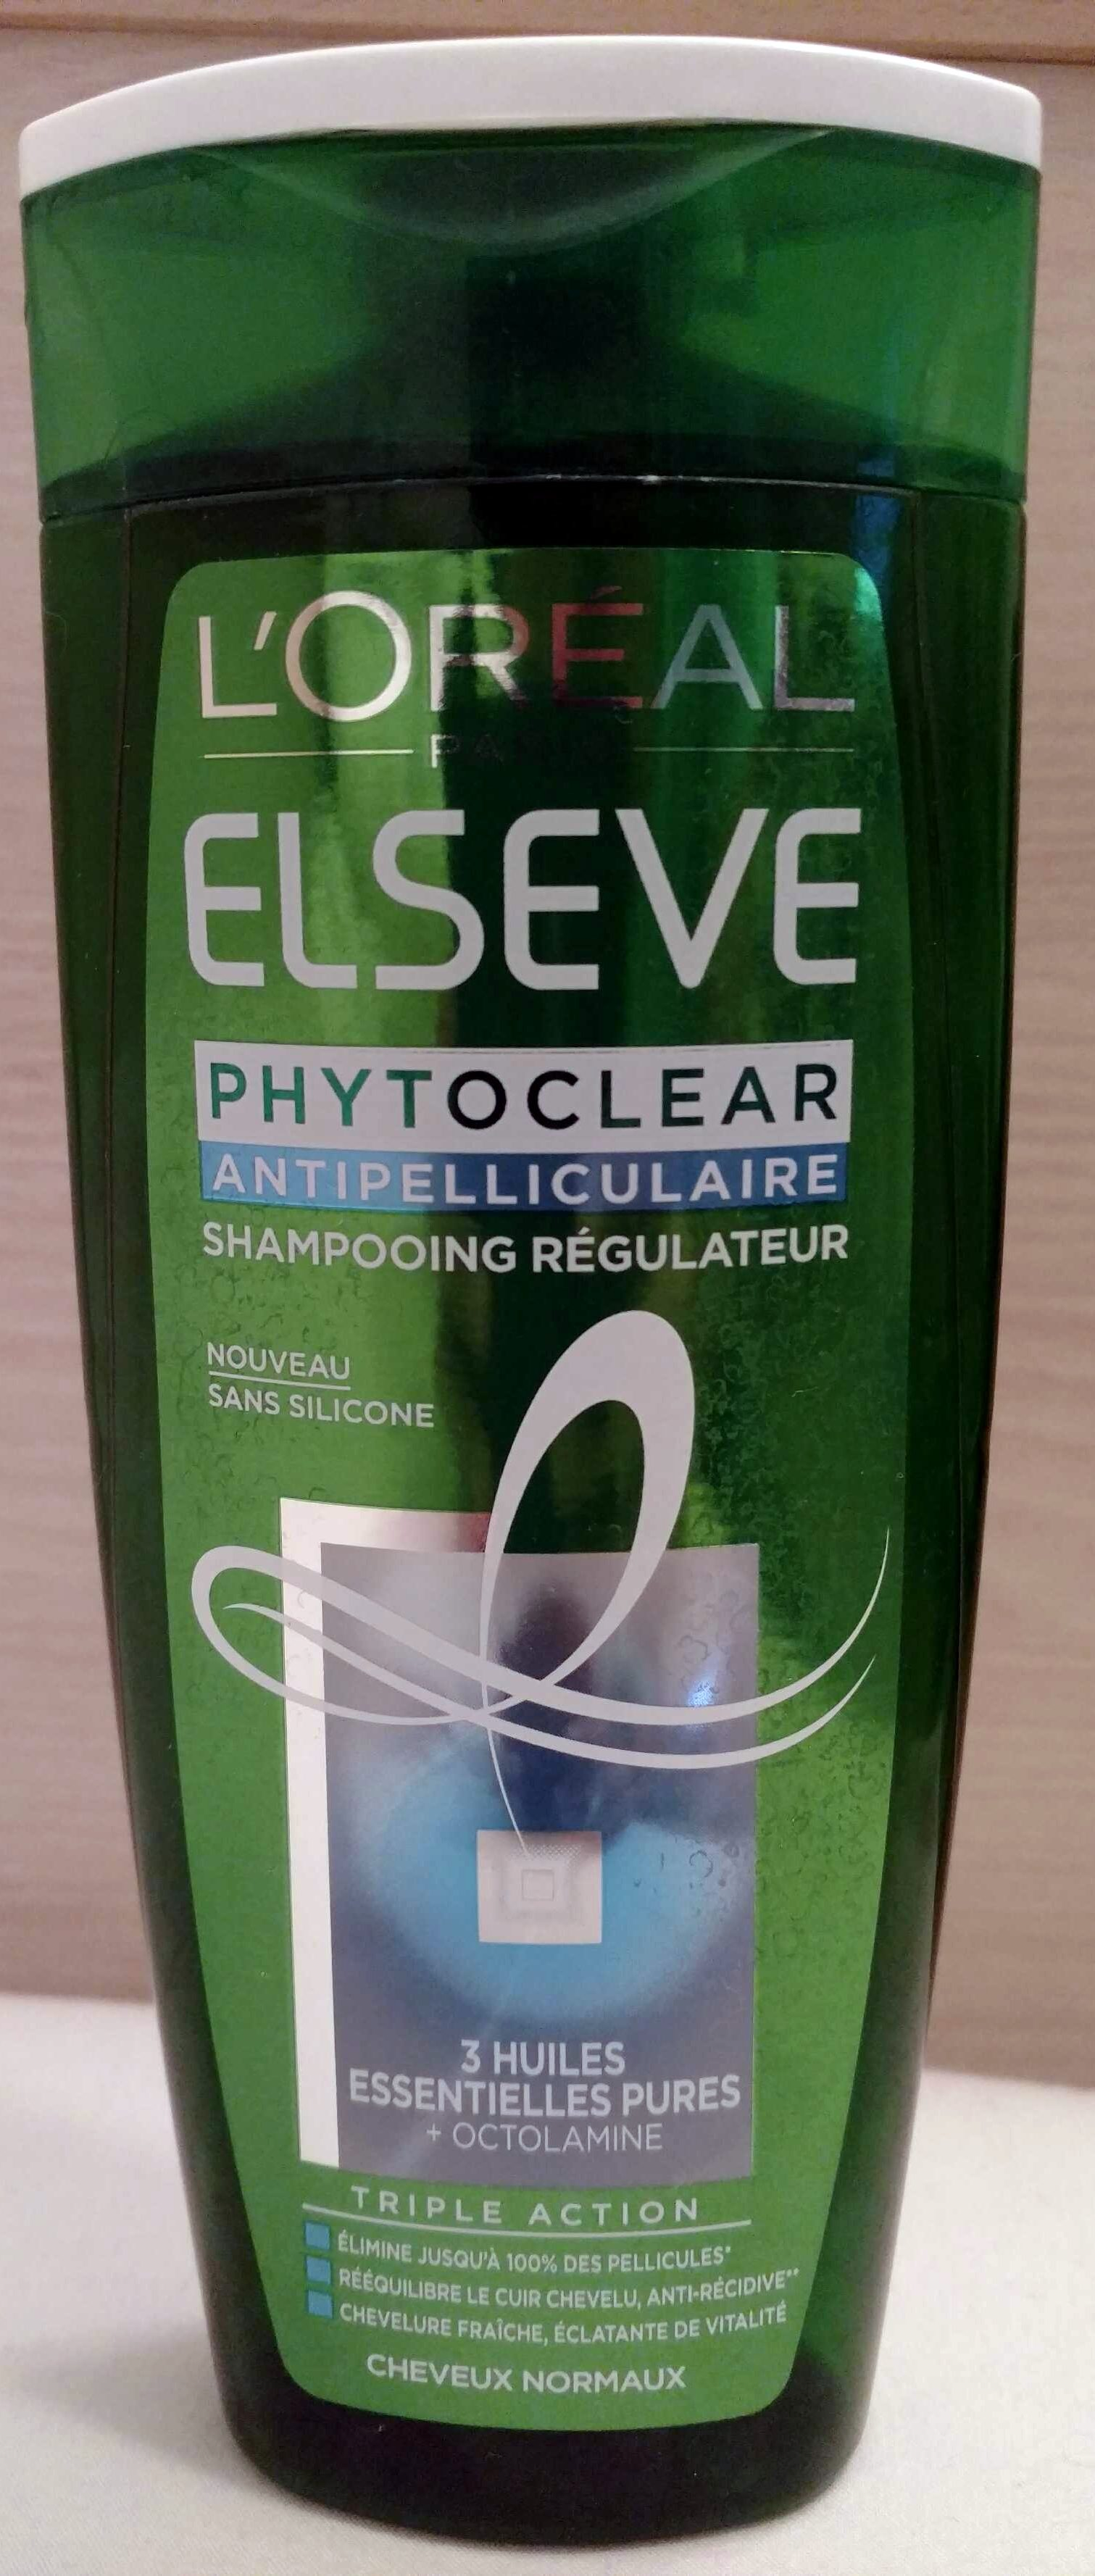 Phytoclear antipelliculaire - Shampooing régulateur - Product